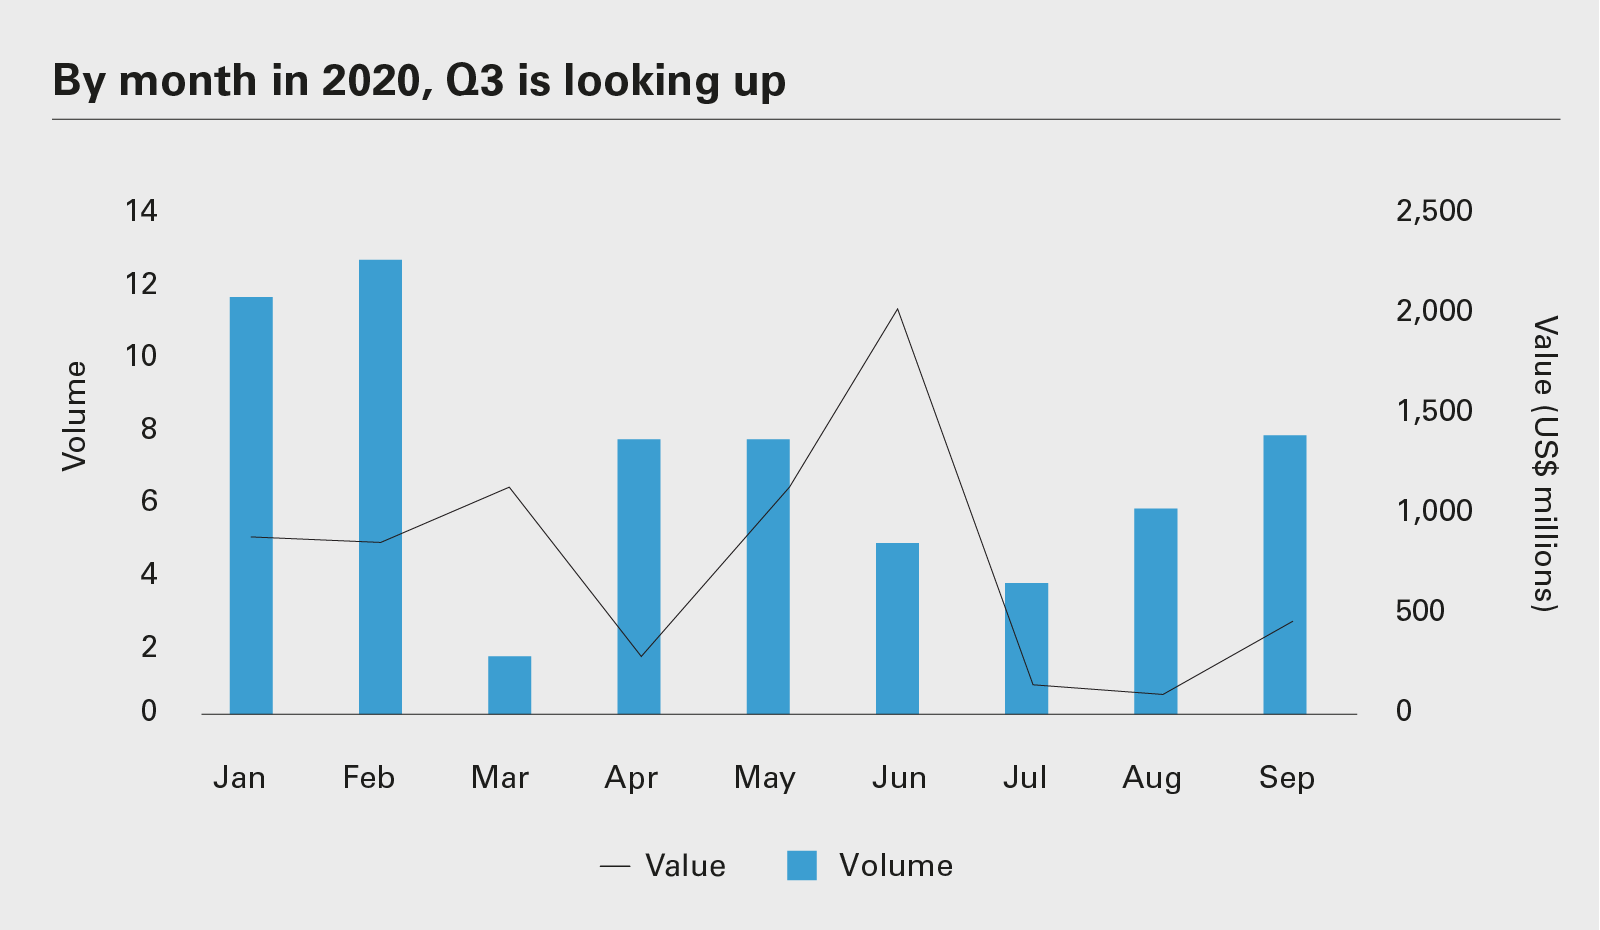 By month in 2020, Q3 is looking up